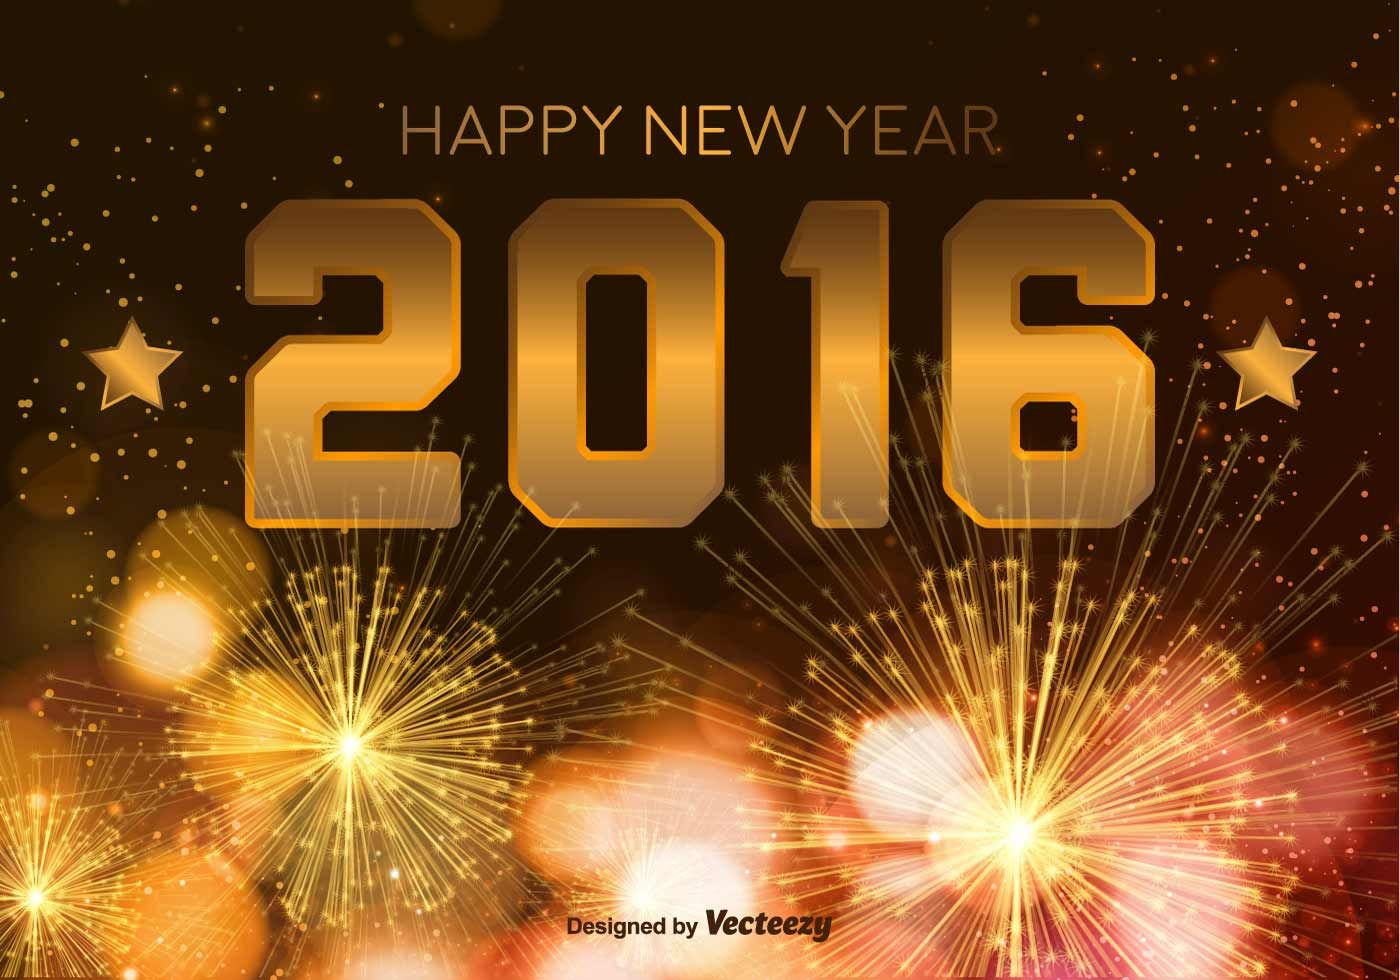 17 Best images about Happy New Year 2016 on Pinterest   New year ...